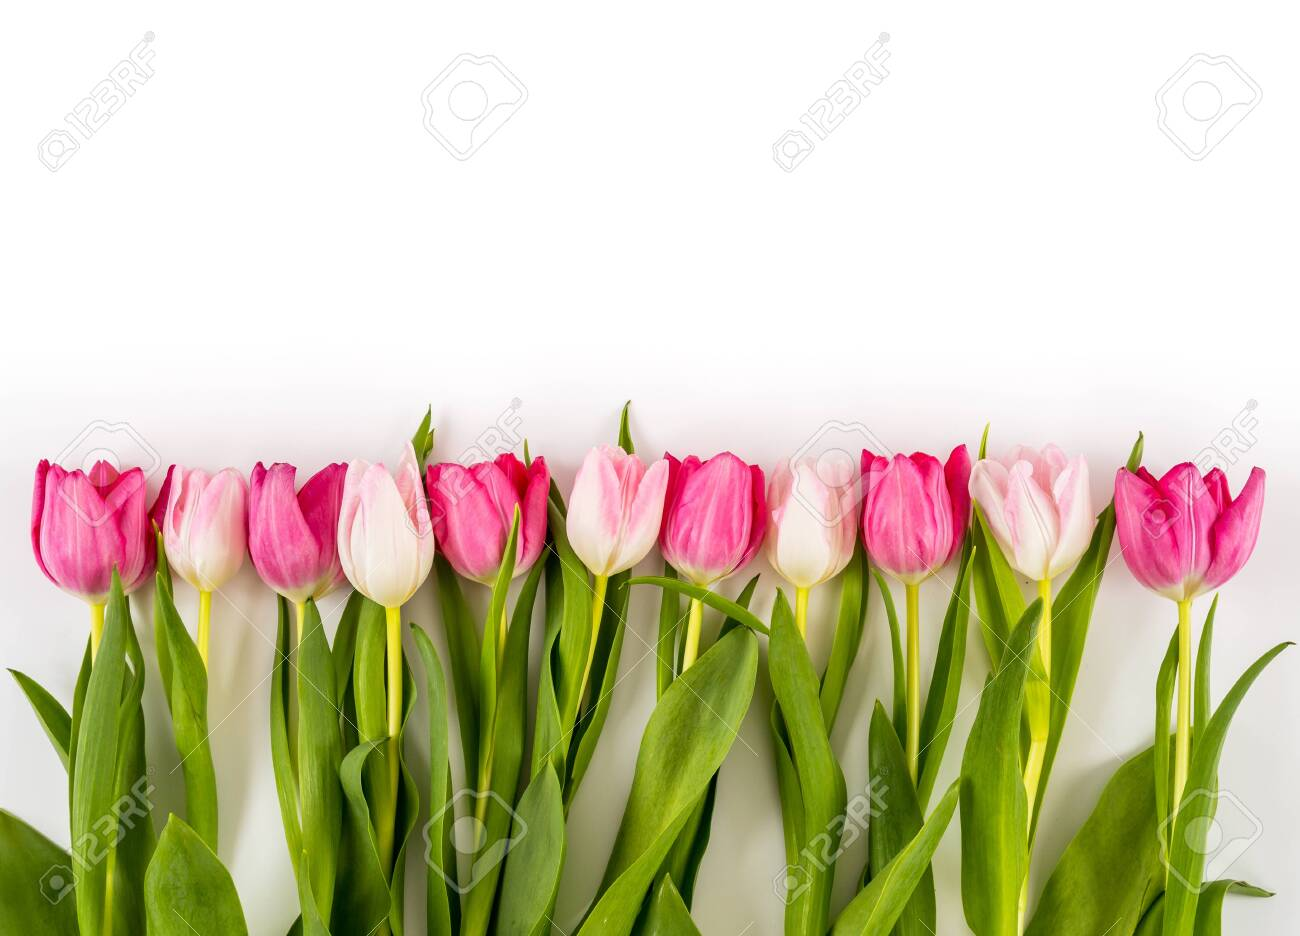 Spring Fresh multicolored tulips isolated on white background. Congratulation. Valentine's Day, spring, Easter. Space for text. - 138087326